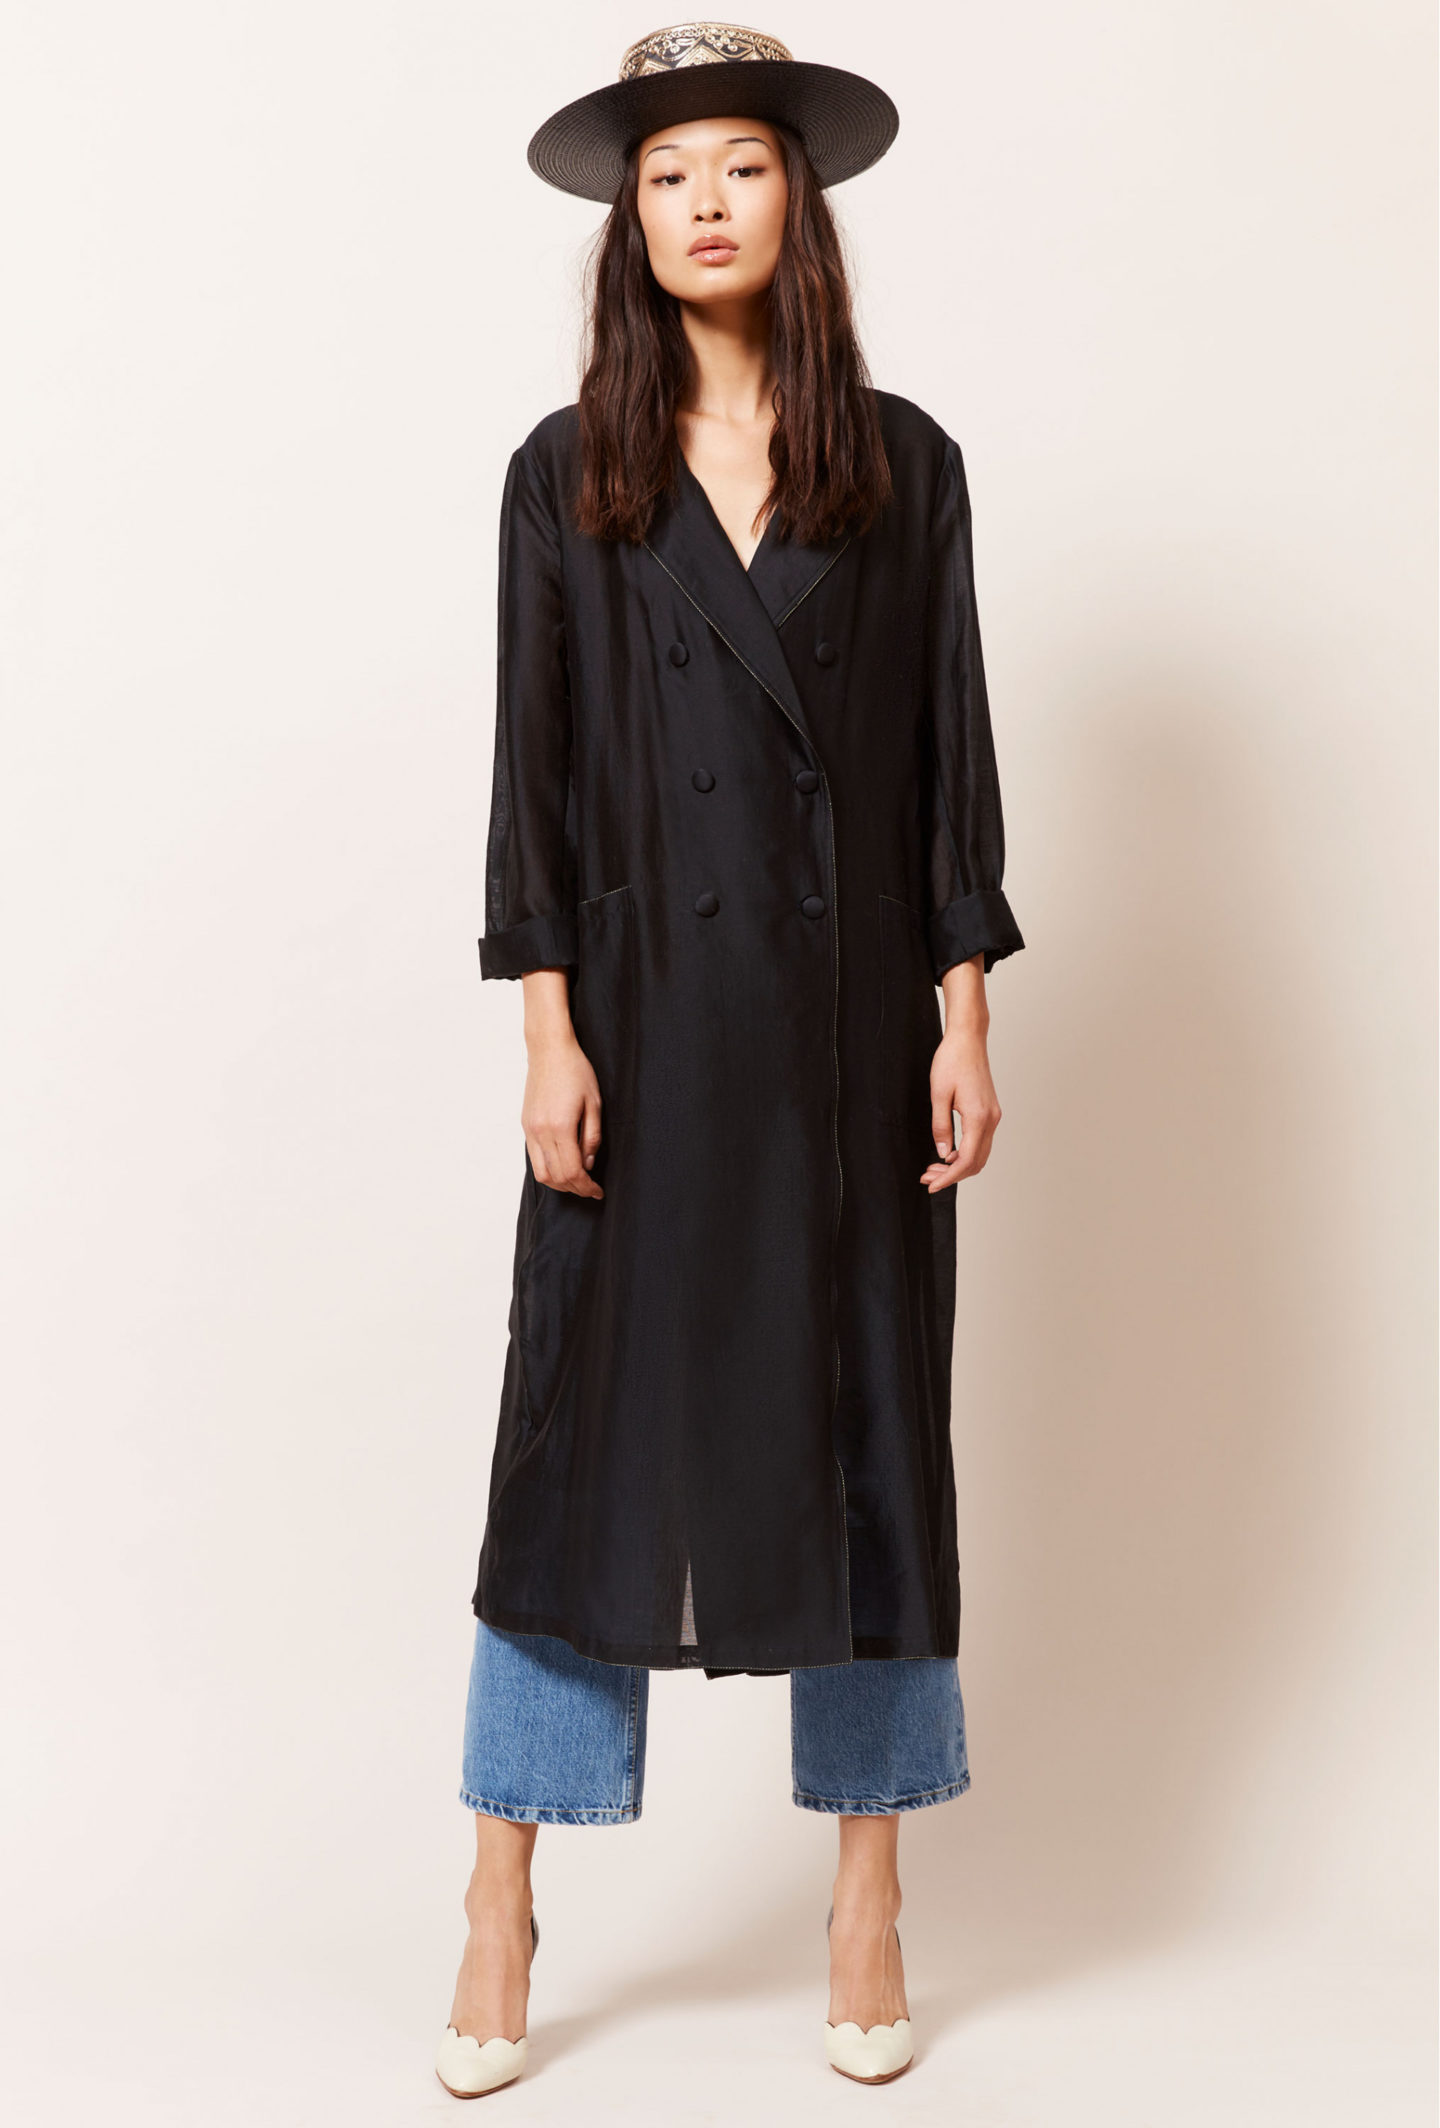 Mes Demoiselles jacket dress